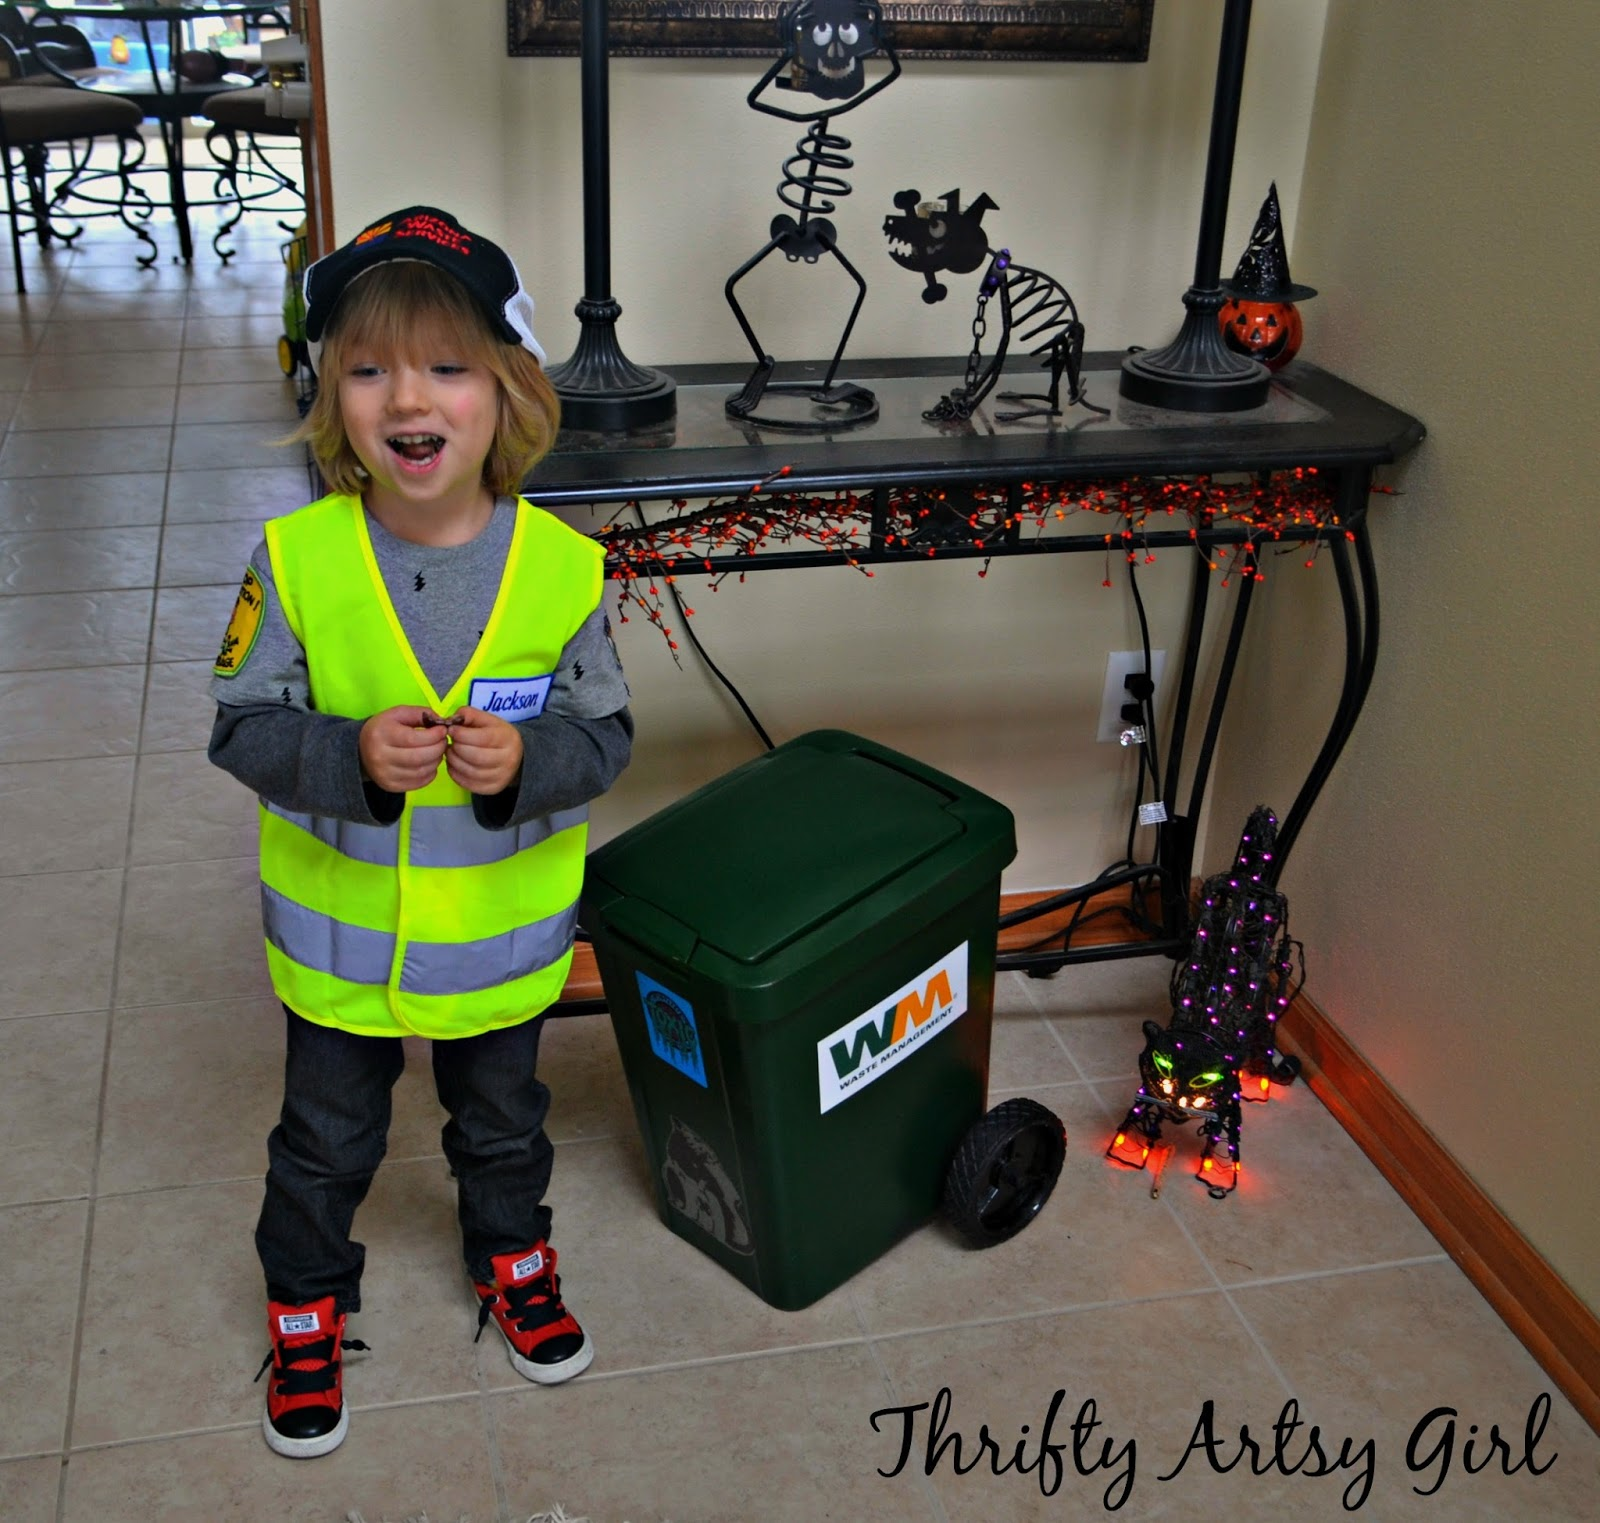 Thrifty Artsy Girl: Take Out the Trash: DIY Toddler Sized